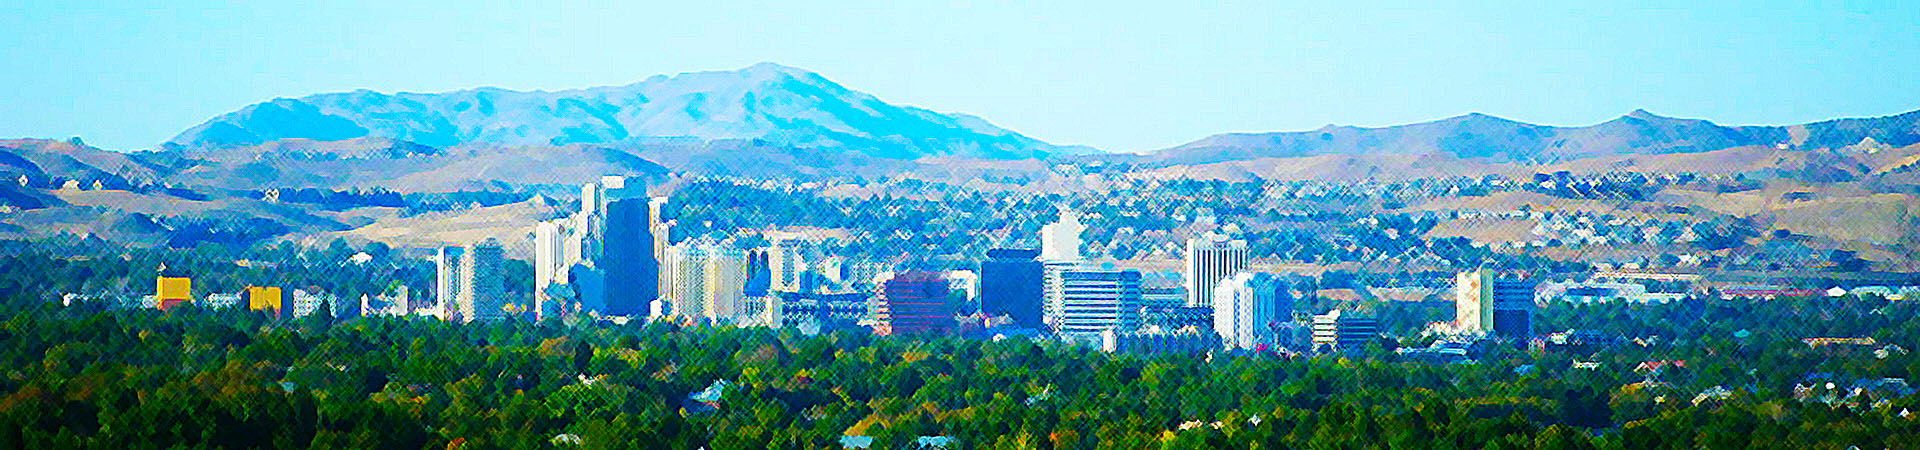 About Rylexa Properties | Reno and Carson City, NV Apartments